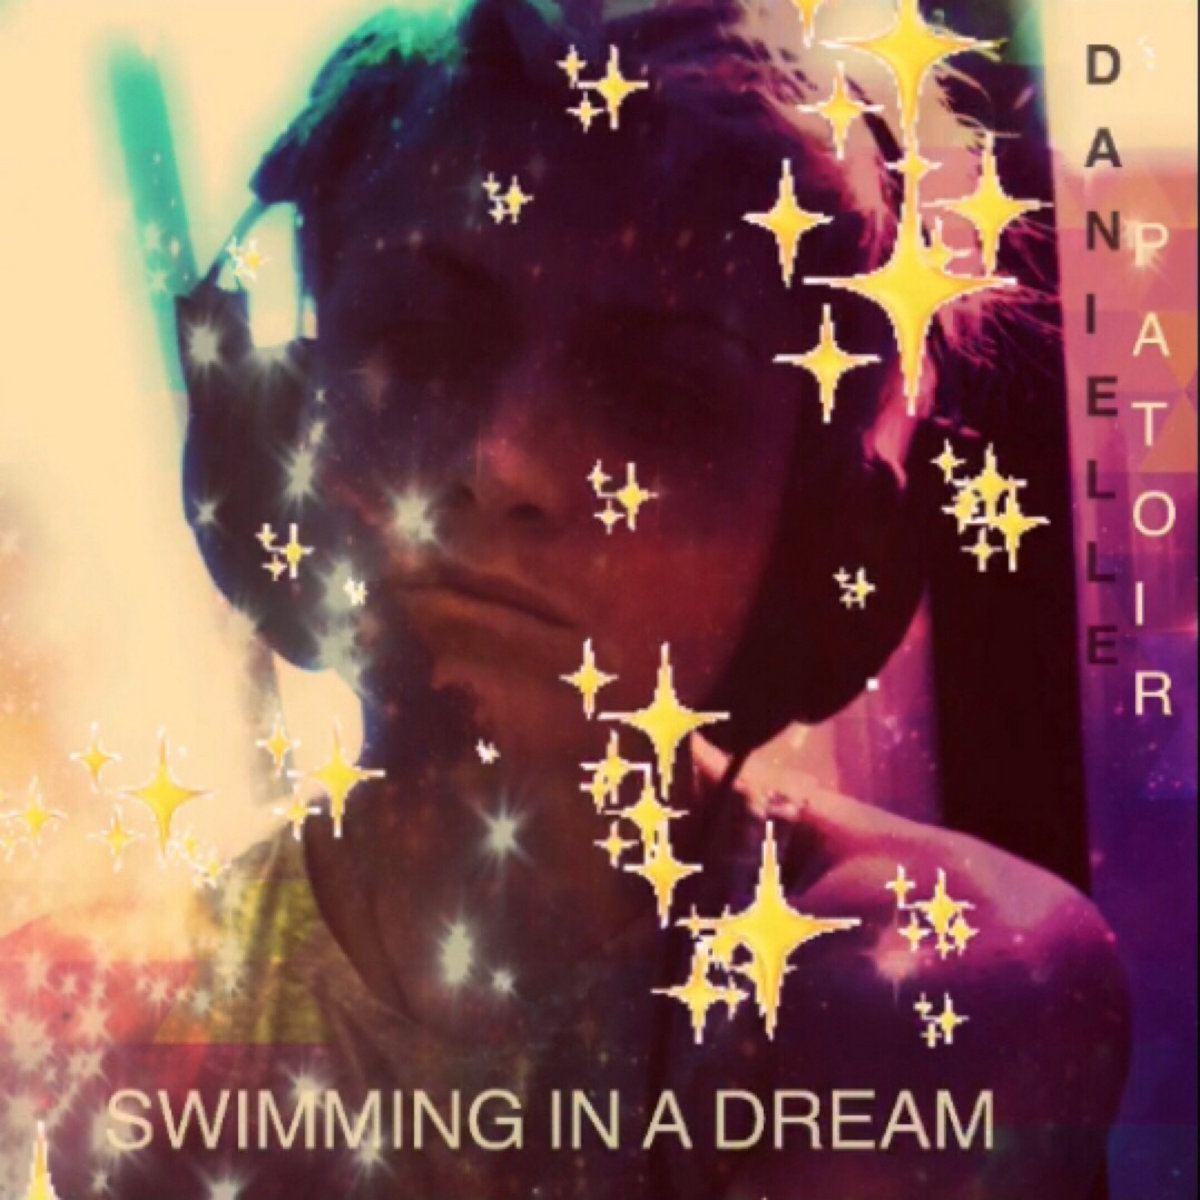 Swimming In A Dream by Danielle Patoir